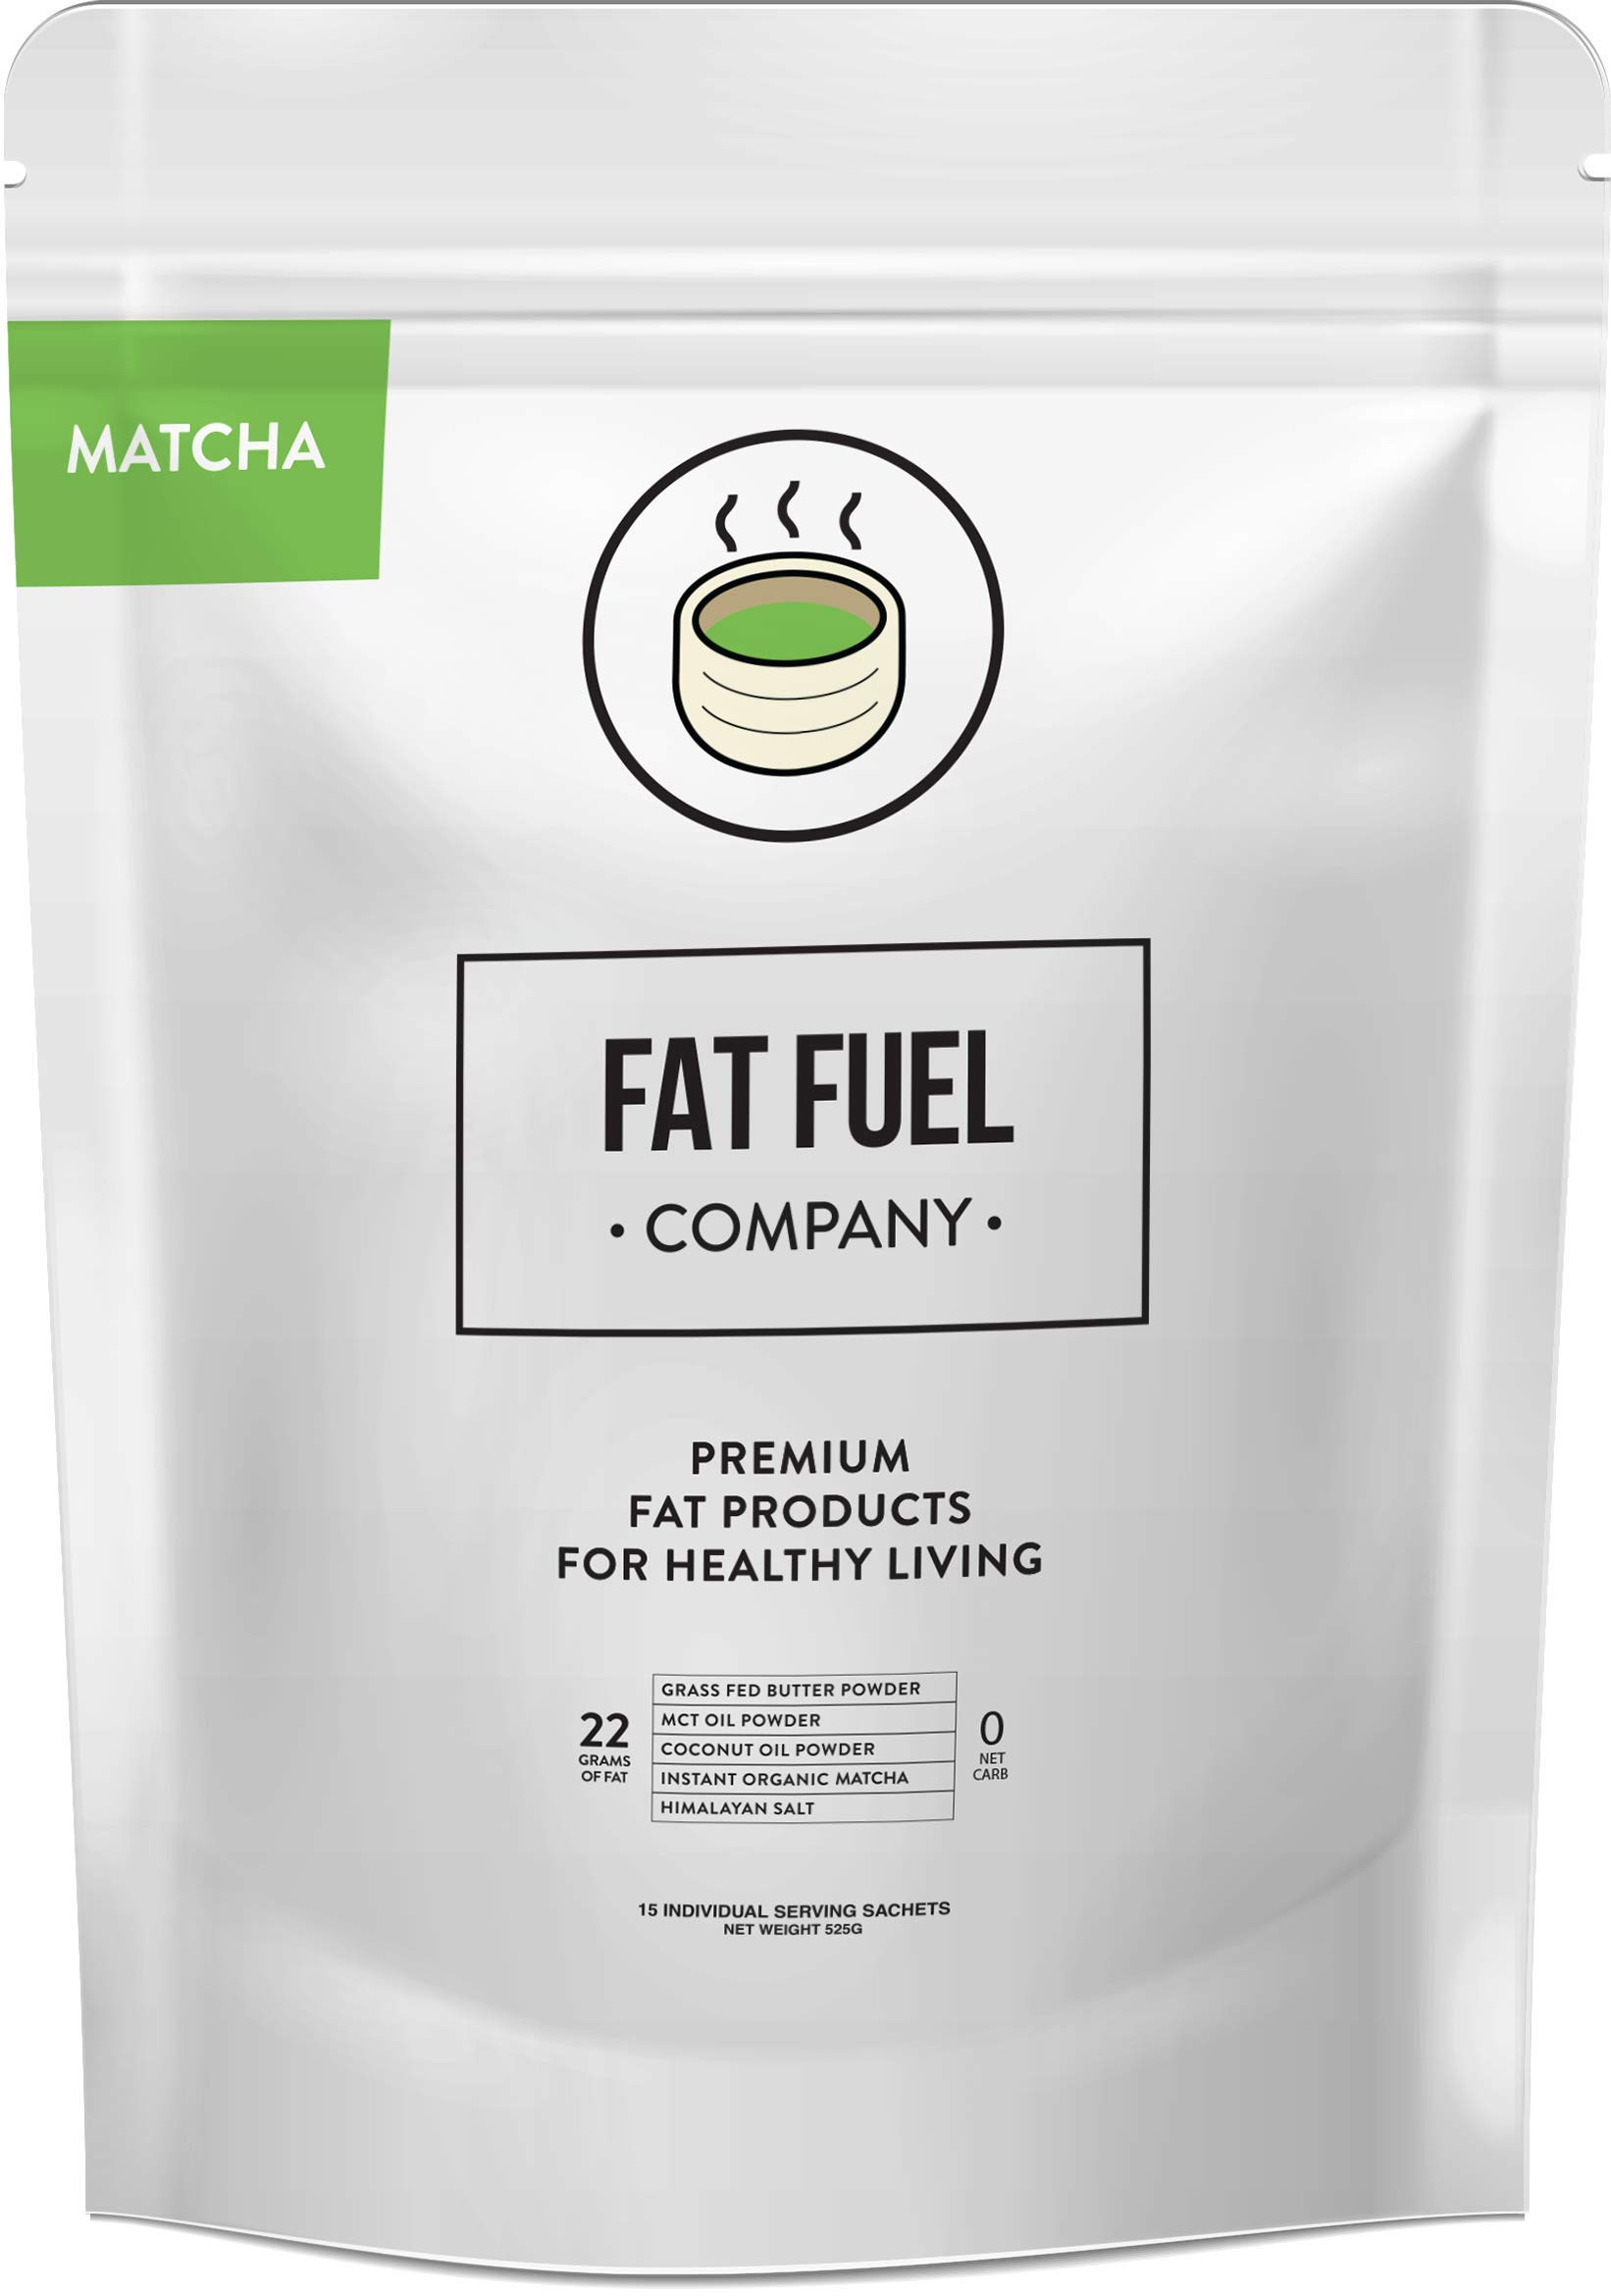 Fat Fuel Company Keto Matcha Green Tea Powder | MCT, Coconut Oil, Himalayan Salt & Grass-Fed Butter | Organic Ingredients | Energy, Focus , Detox | Perfect Drink For Low-Carb Diet | 15 Packets by The Fat Fuel Company